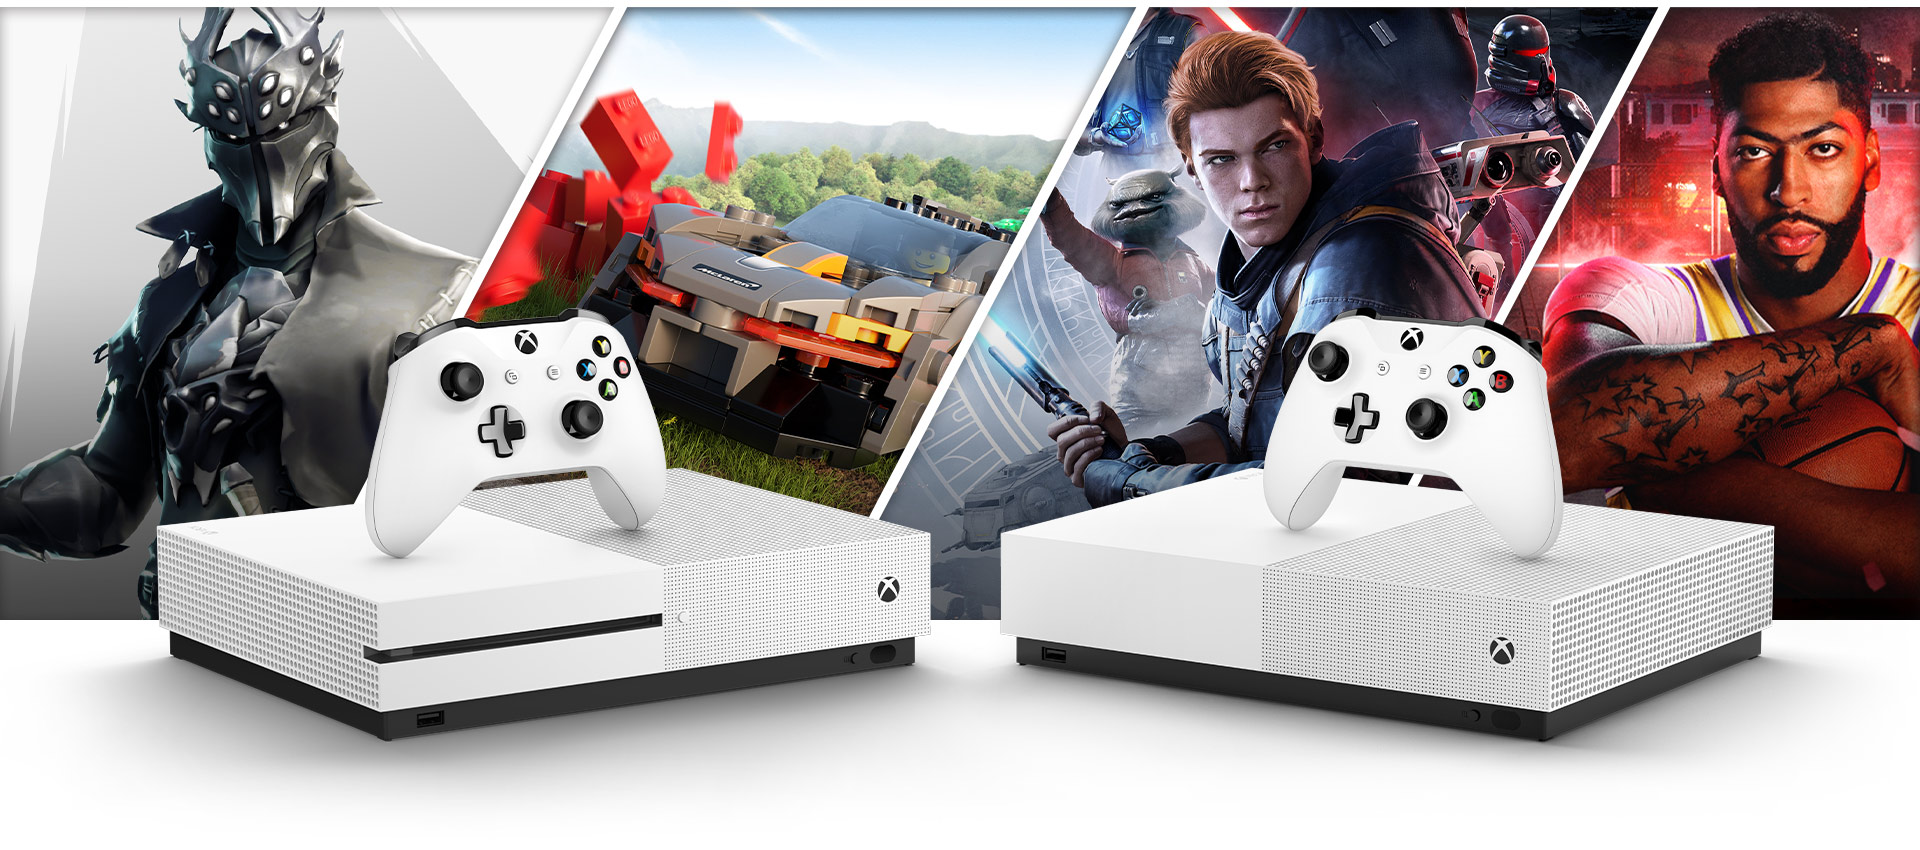 Xbox One S and Xbox One S All Digital Edition 뒤에 있는 Fortnite, Forza Horizon 4, Star Wars Jedi Fallen Order, NBA 2K20 그래픽